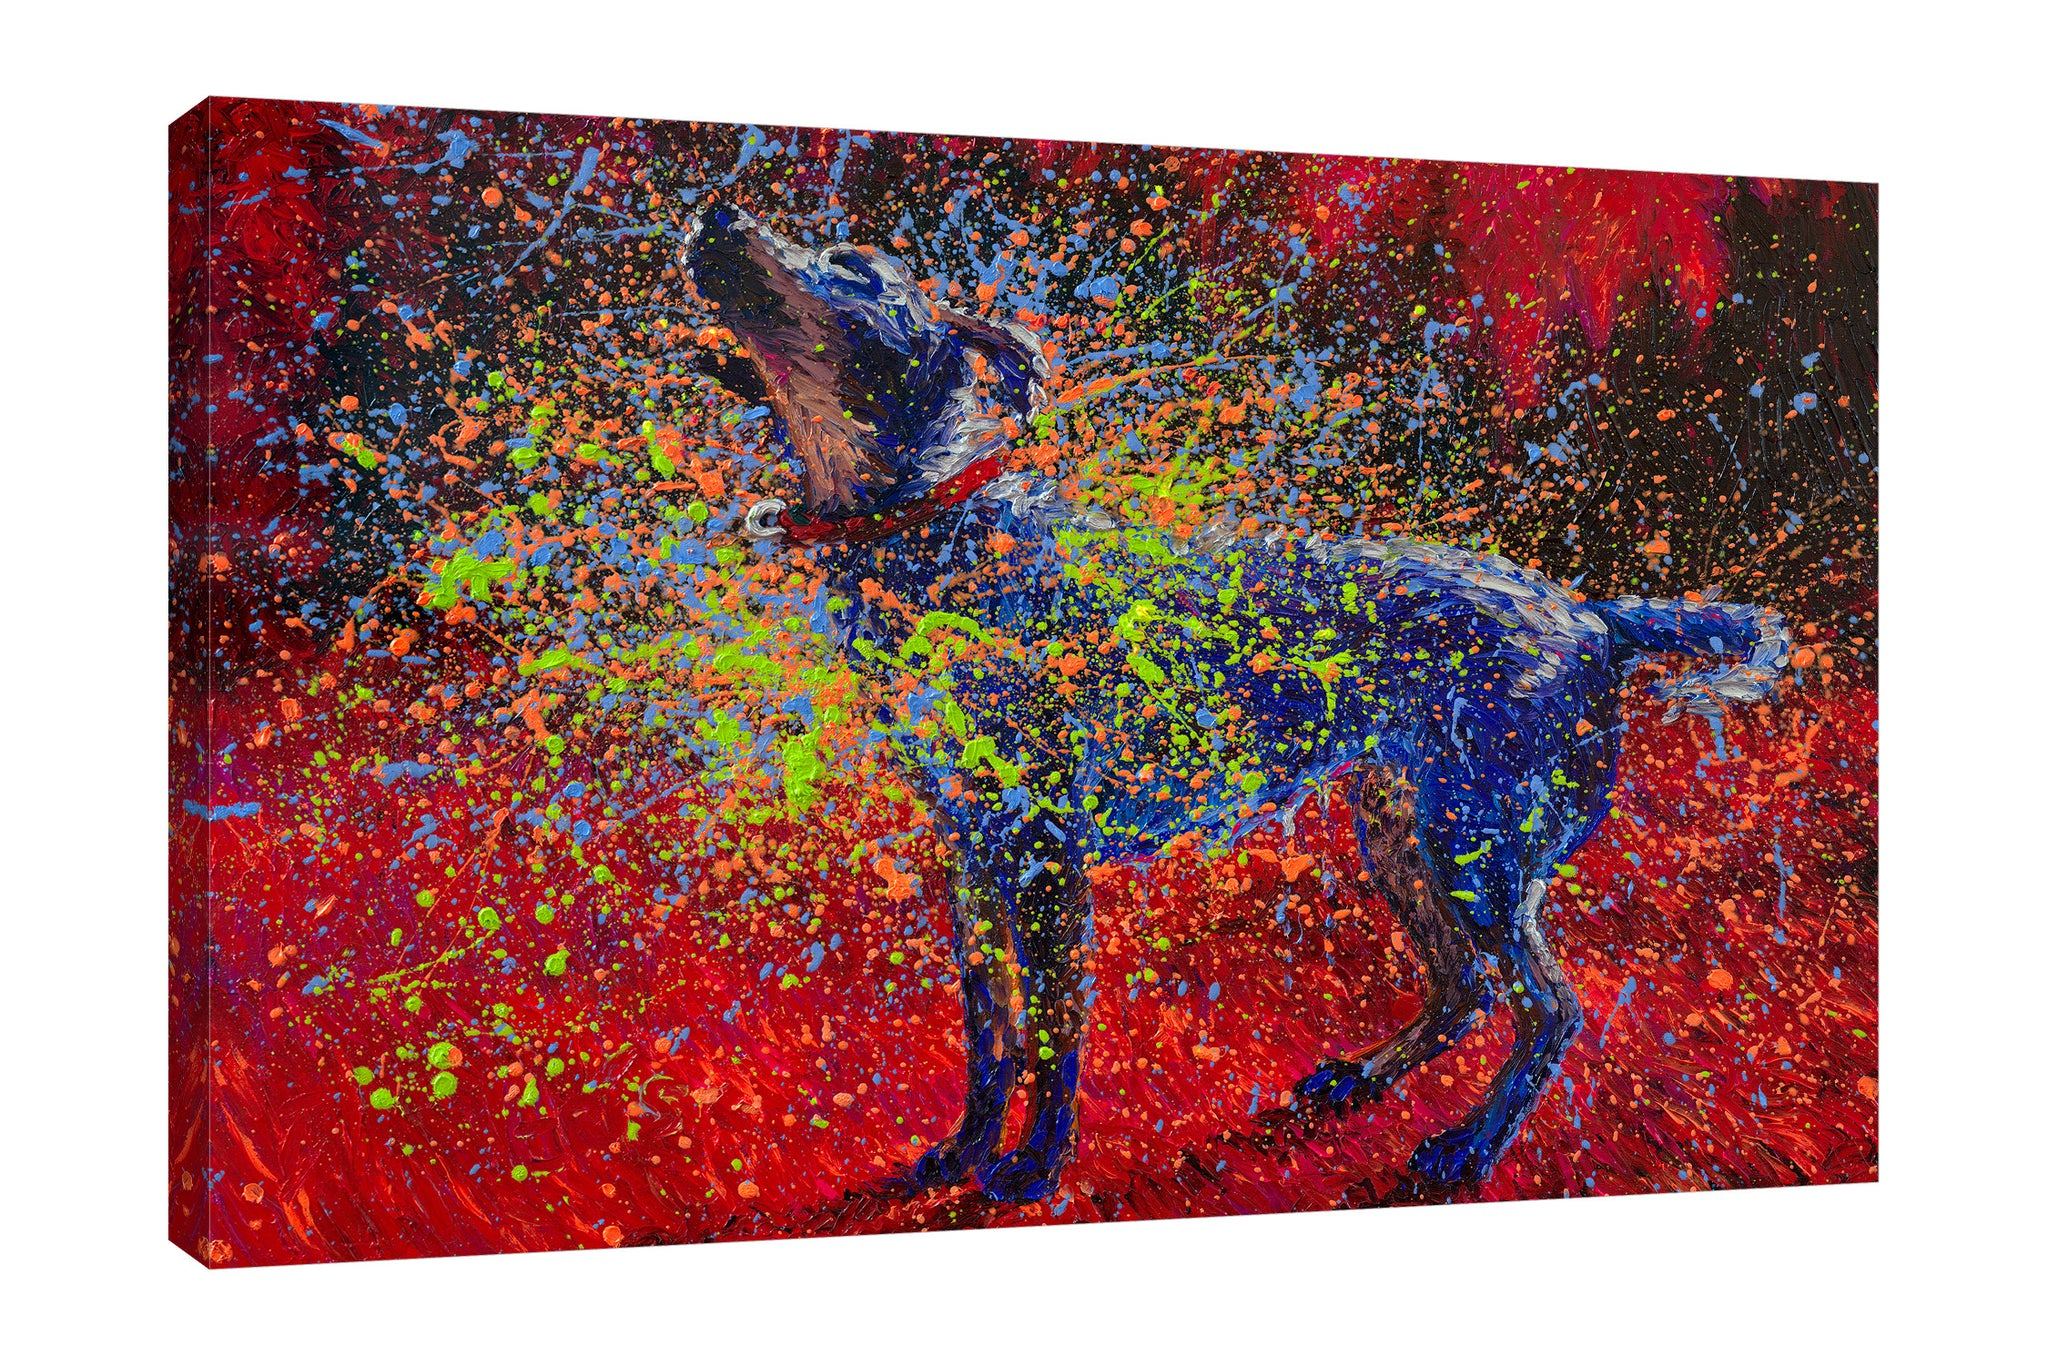 Iris-Scott,Modern & Contemporary,Animals,dogs,animals,big dogs,shake,splatters,